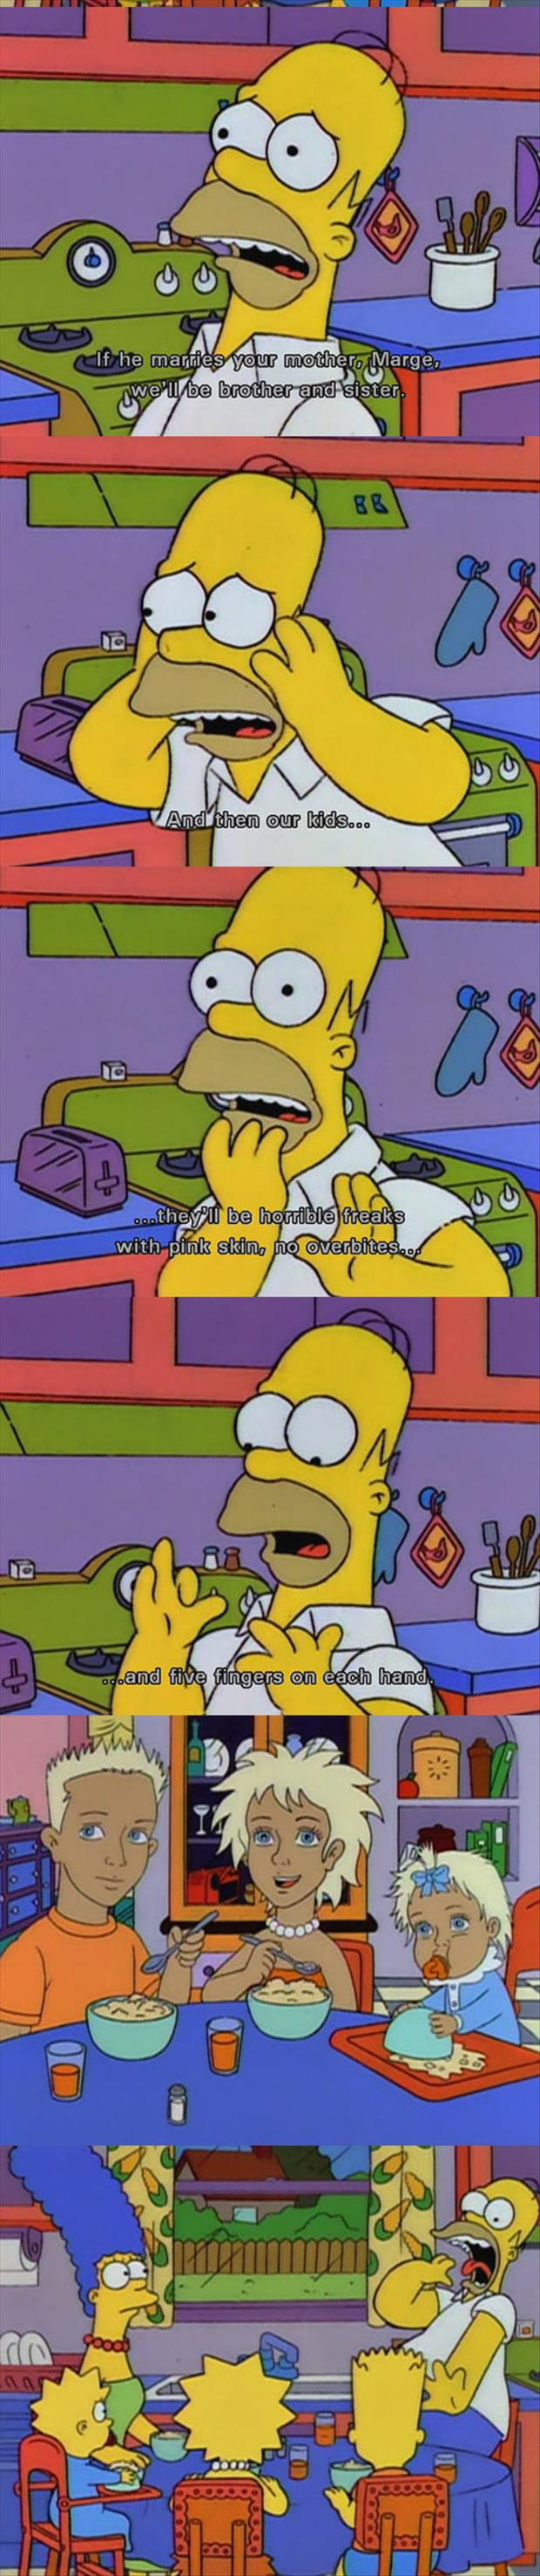 simpsons captions funny pictures